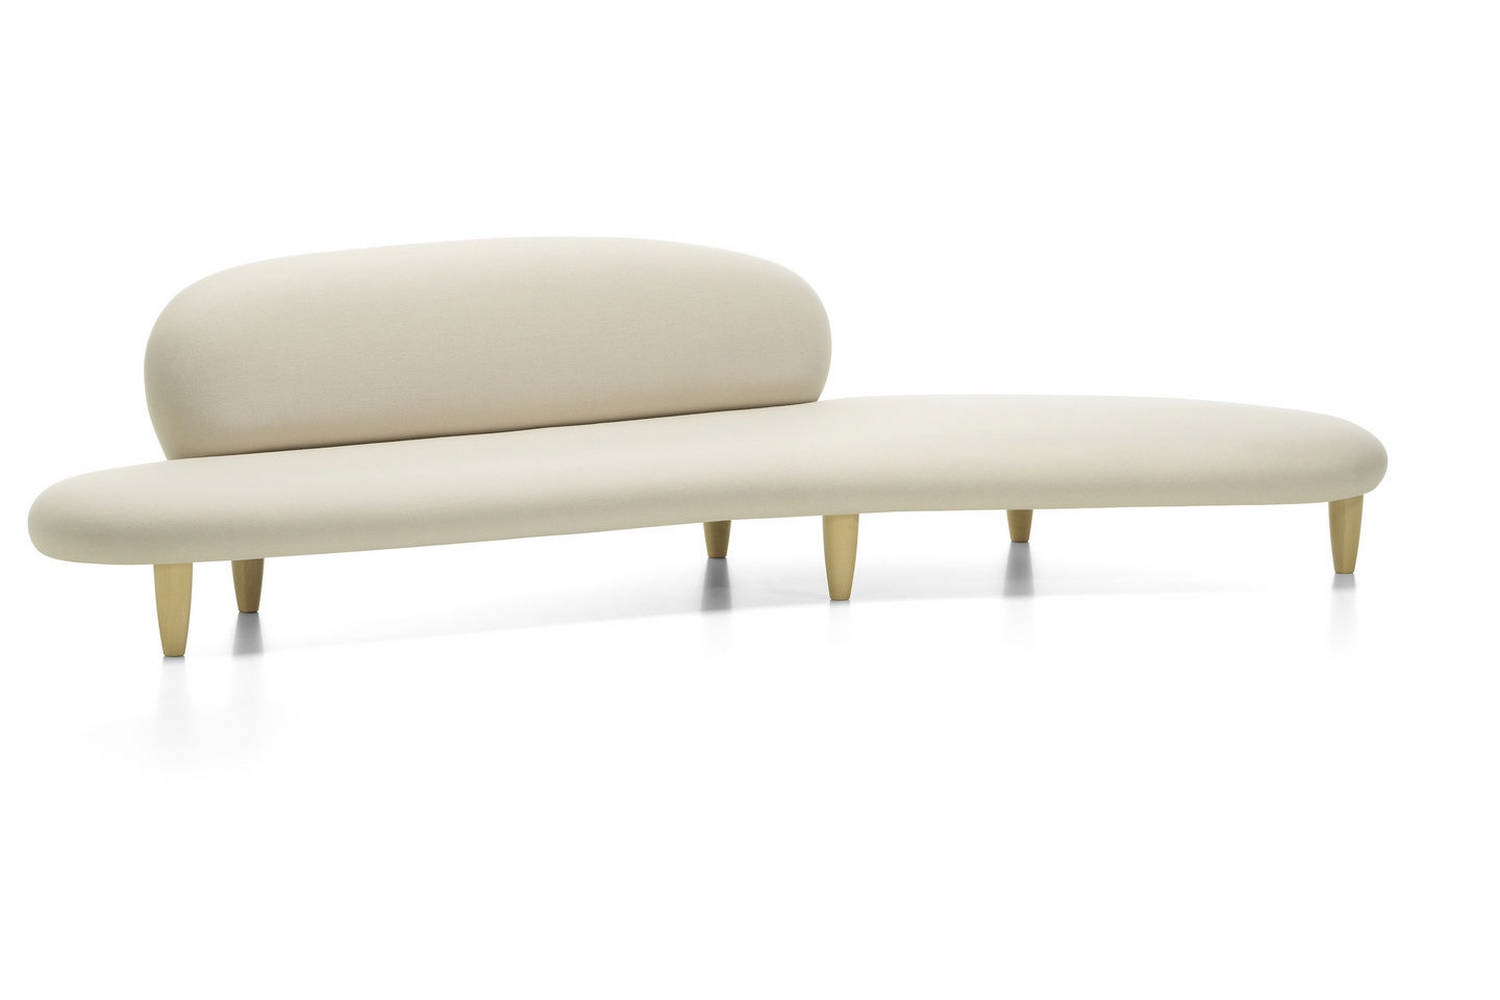 Freeform Sofa by Isamu Noguchi for Vitra